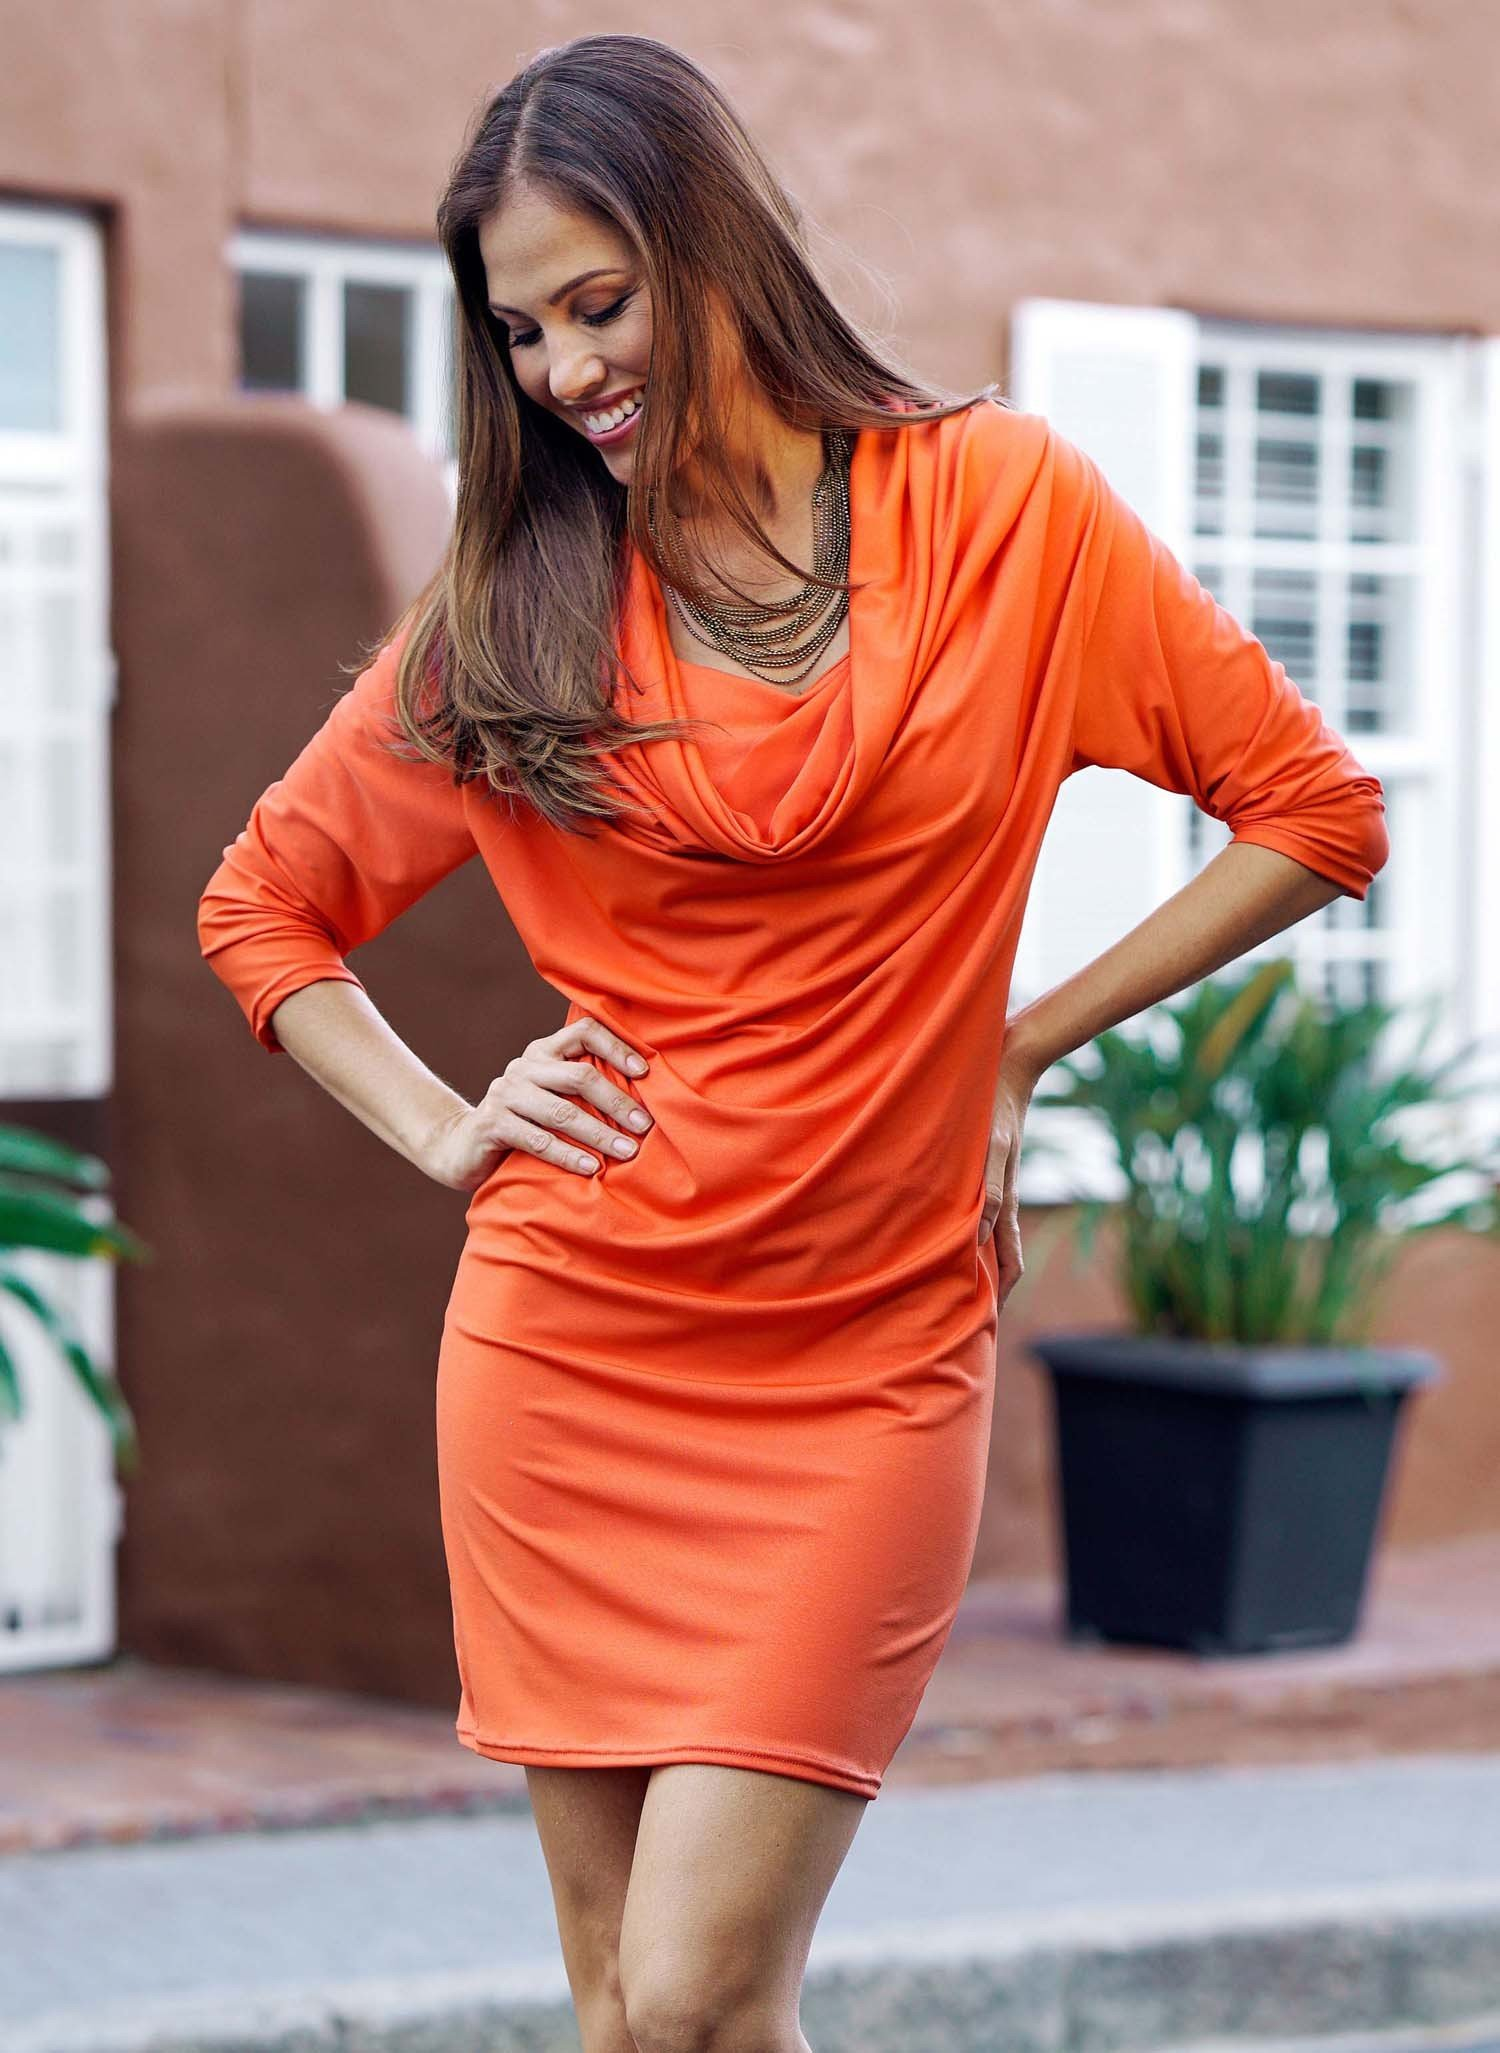 D-3/4-Arm-Kleid,Wasserf.orange L 022 - 3 - Ronja.ch